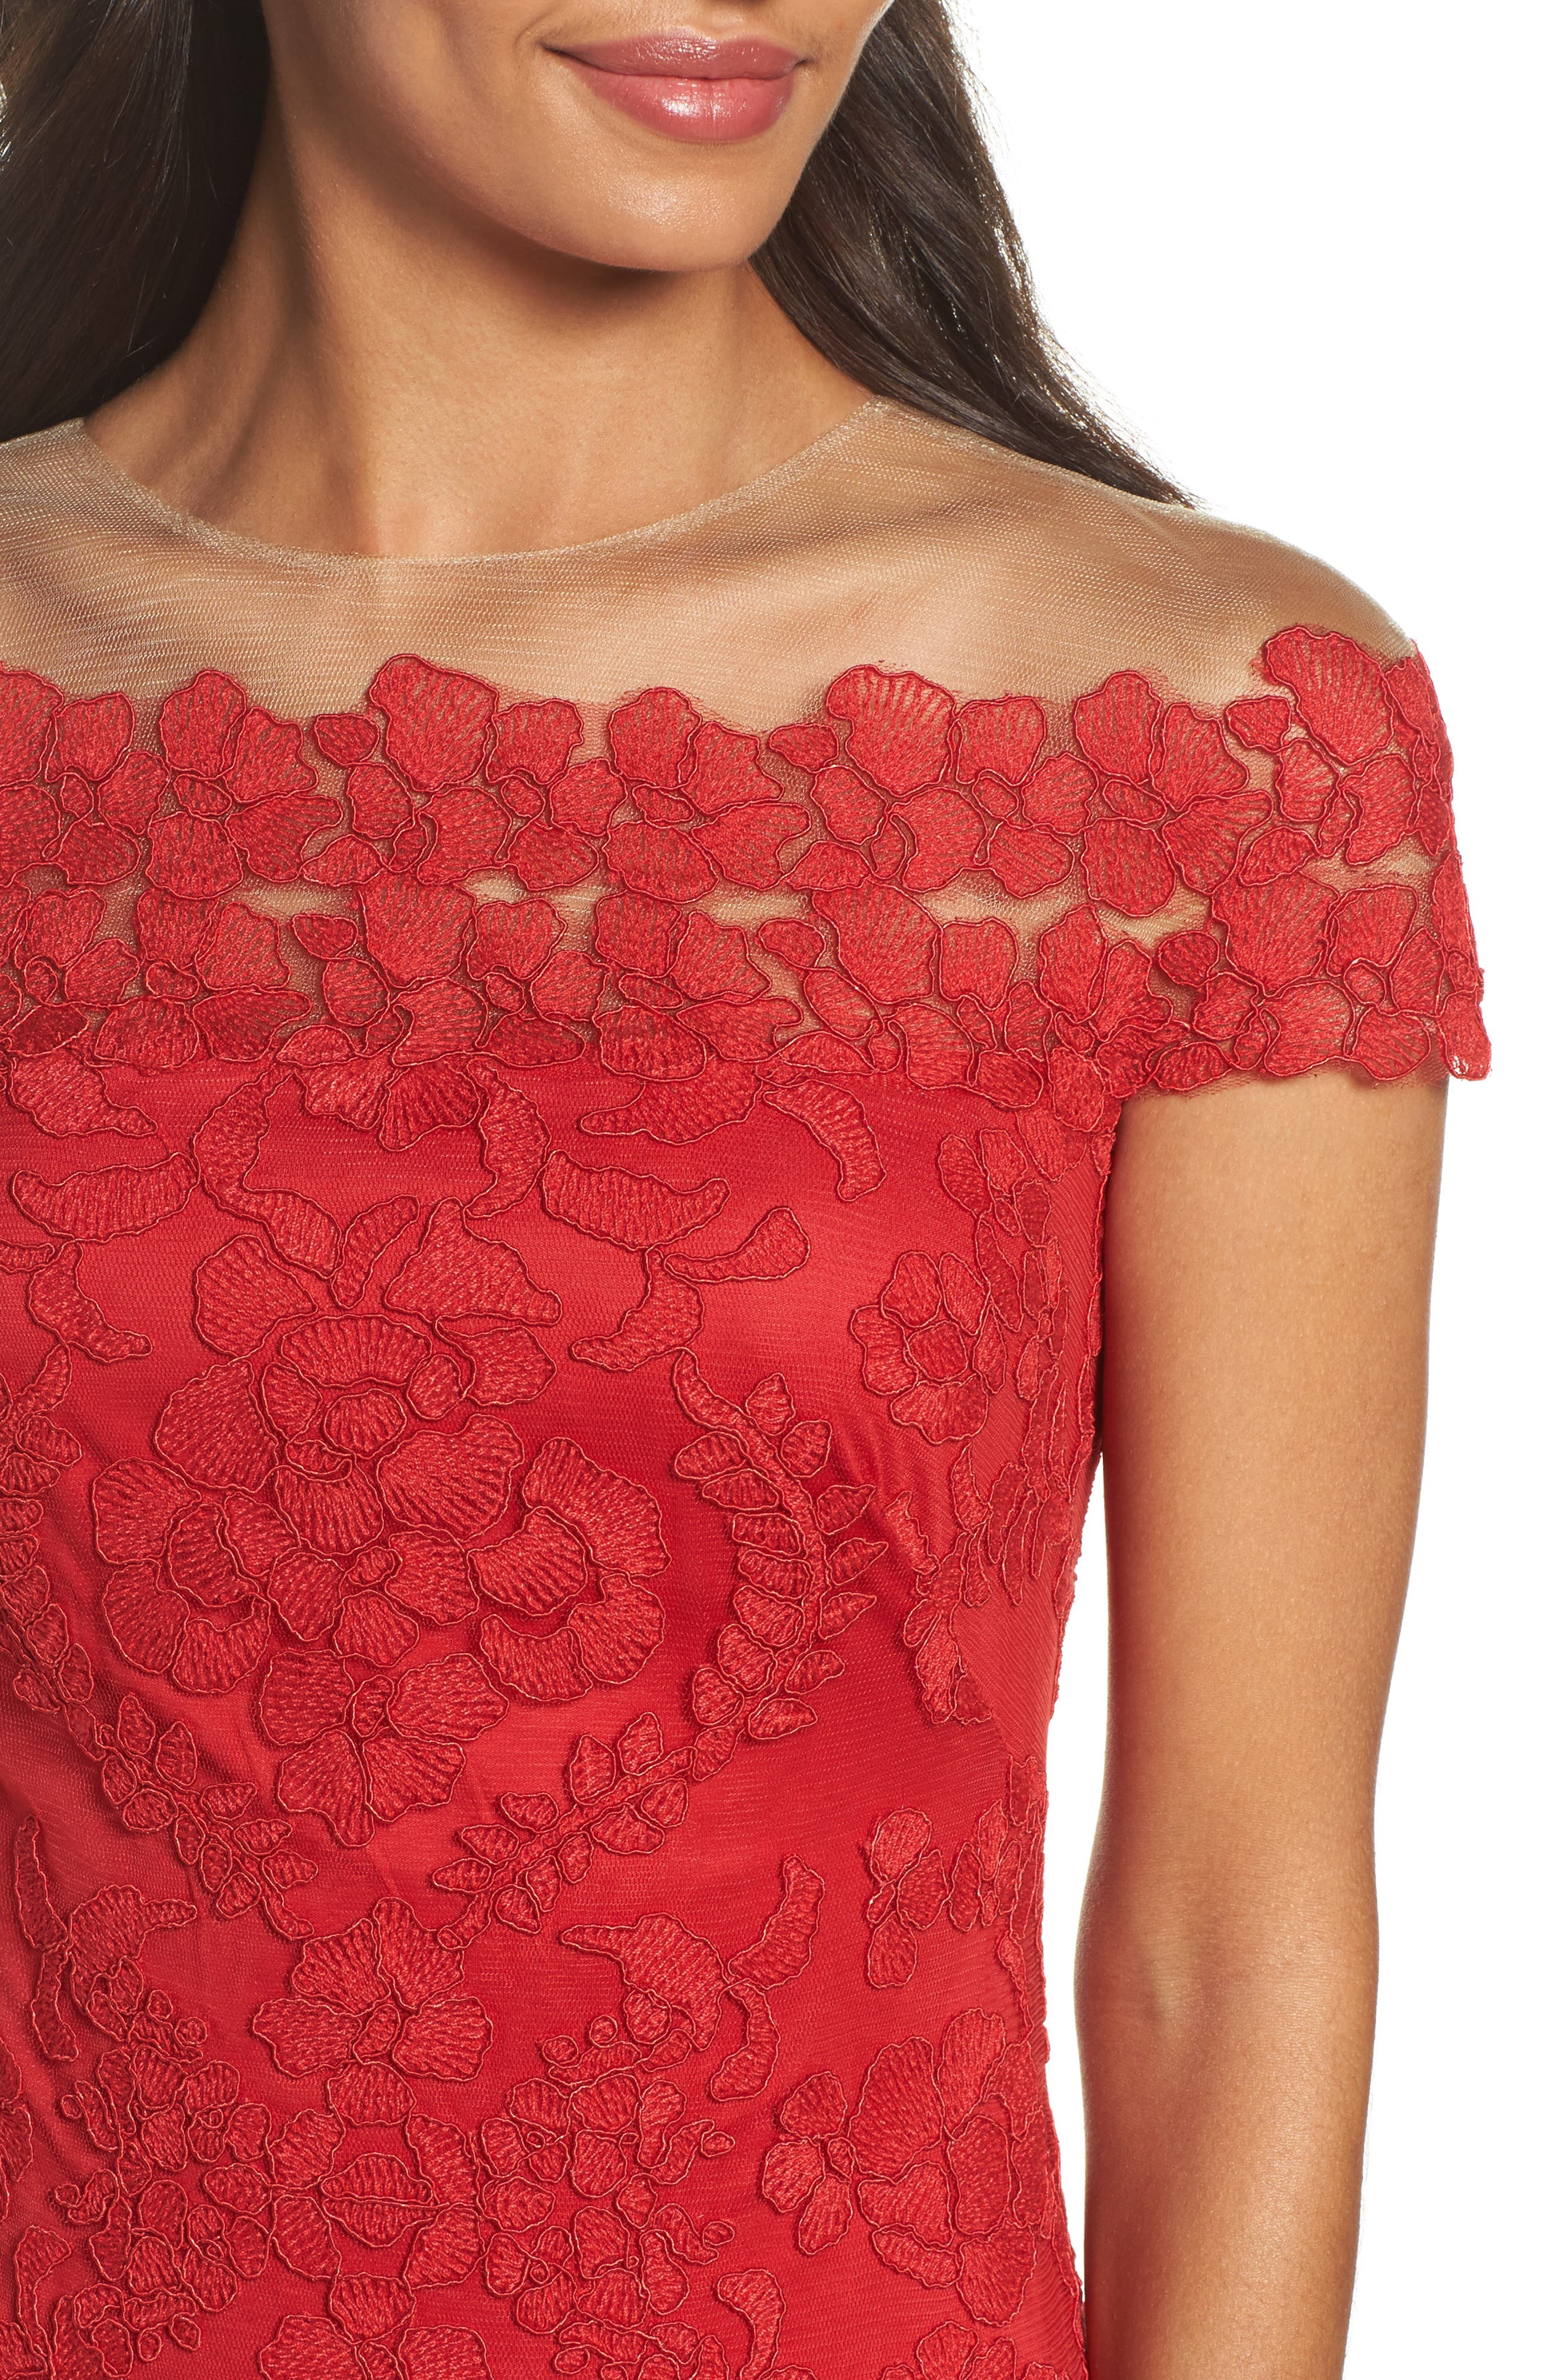 Embroidered Sheath Dress,                             Alternate thumbnail 4, color,                             611